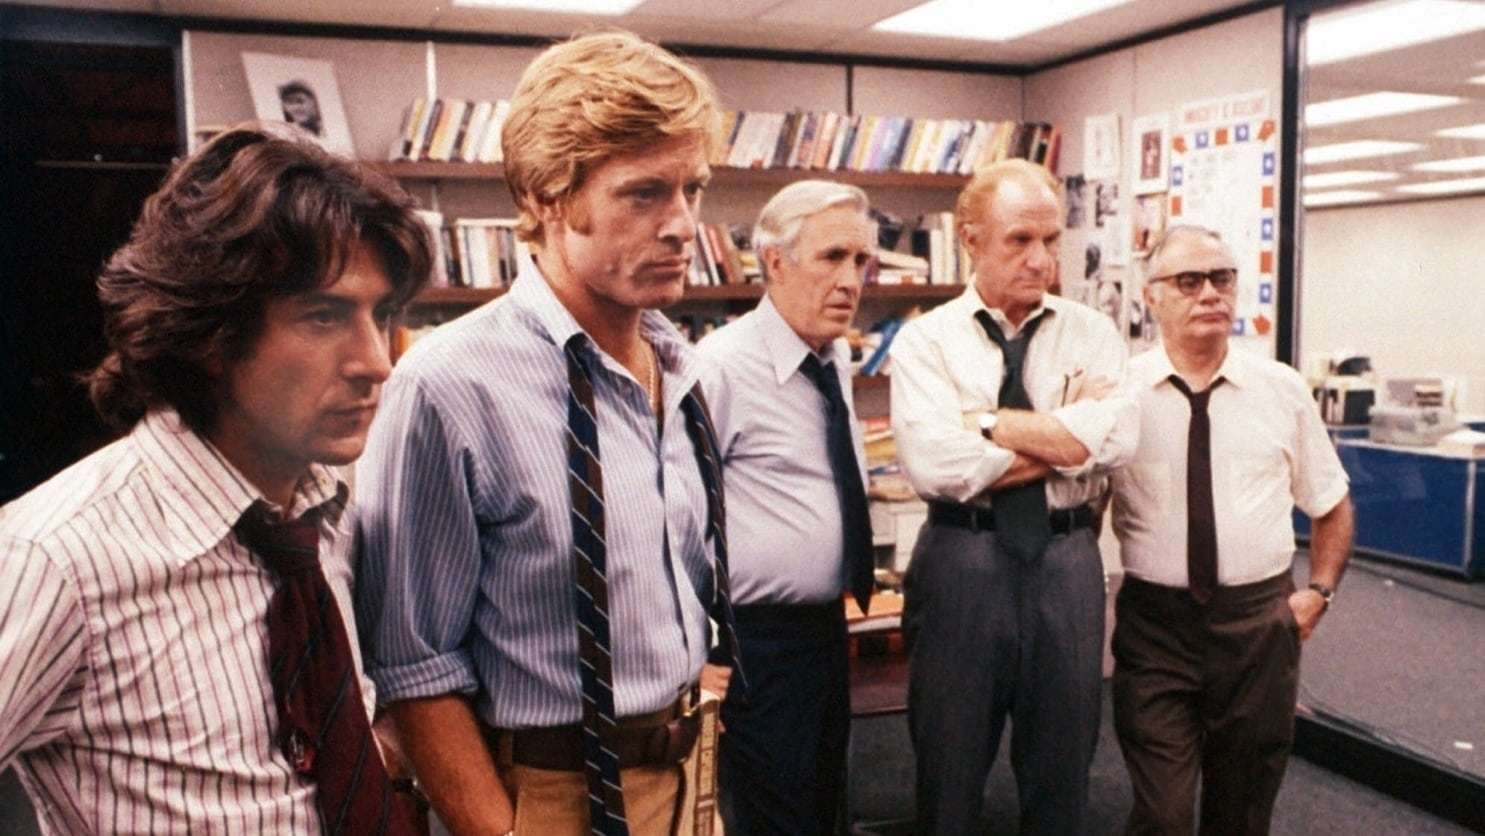 All The President's Men is a classic